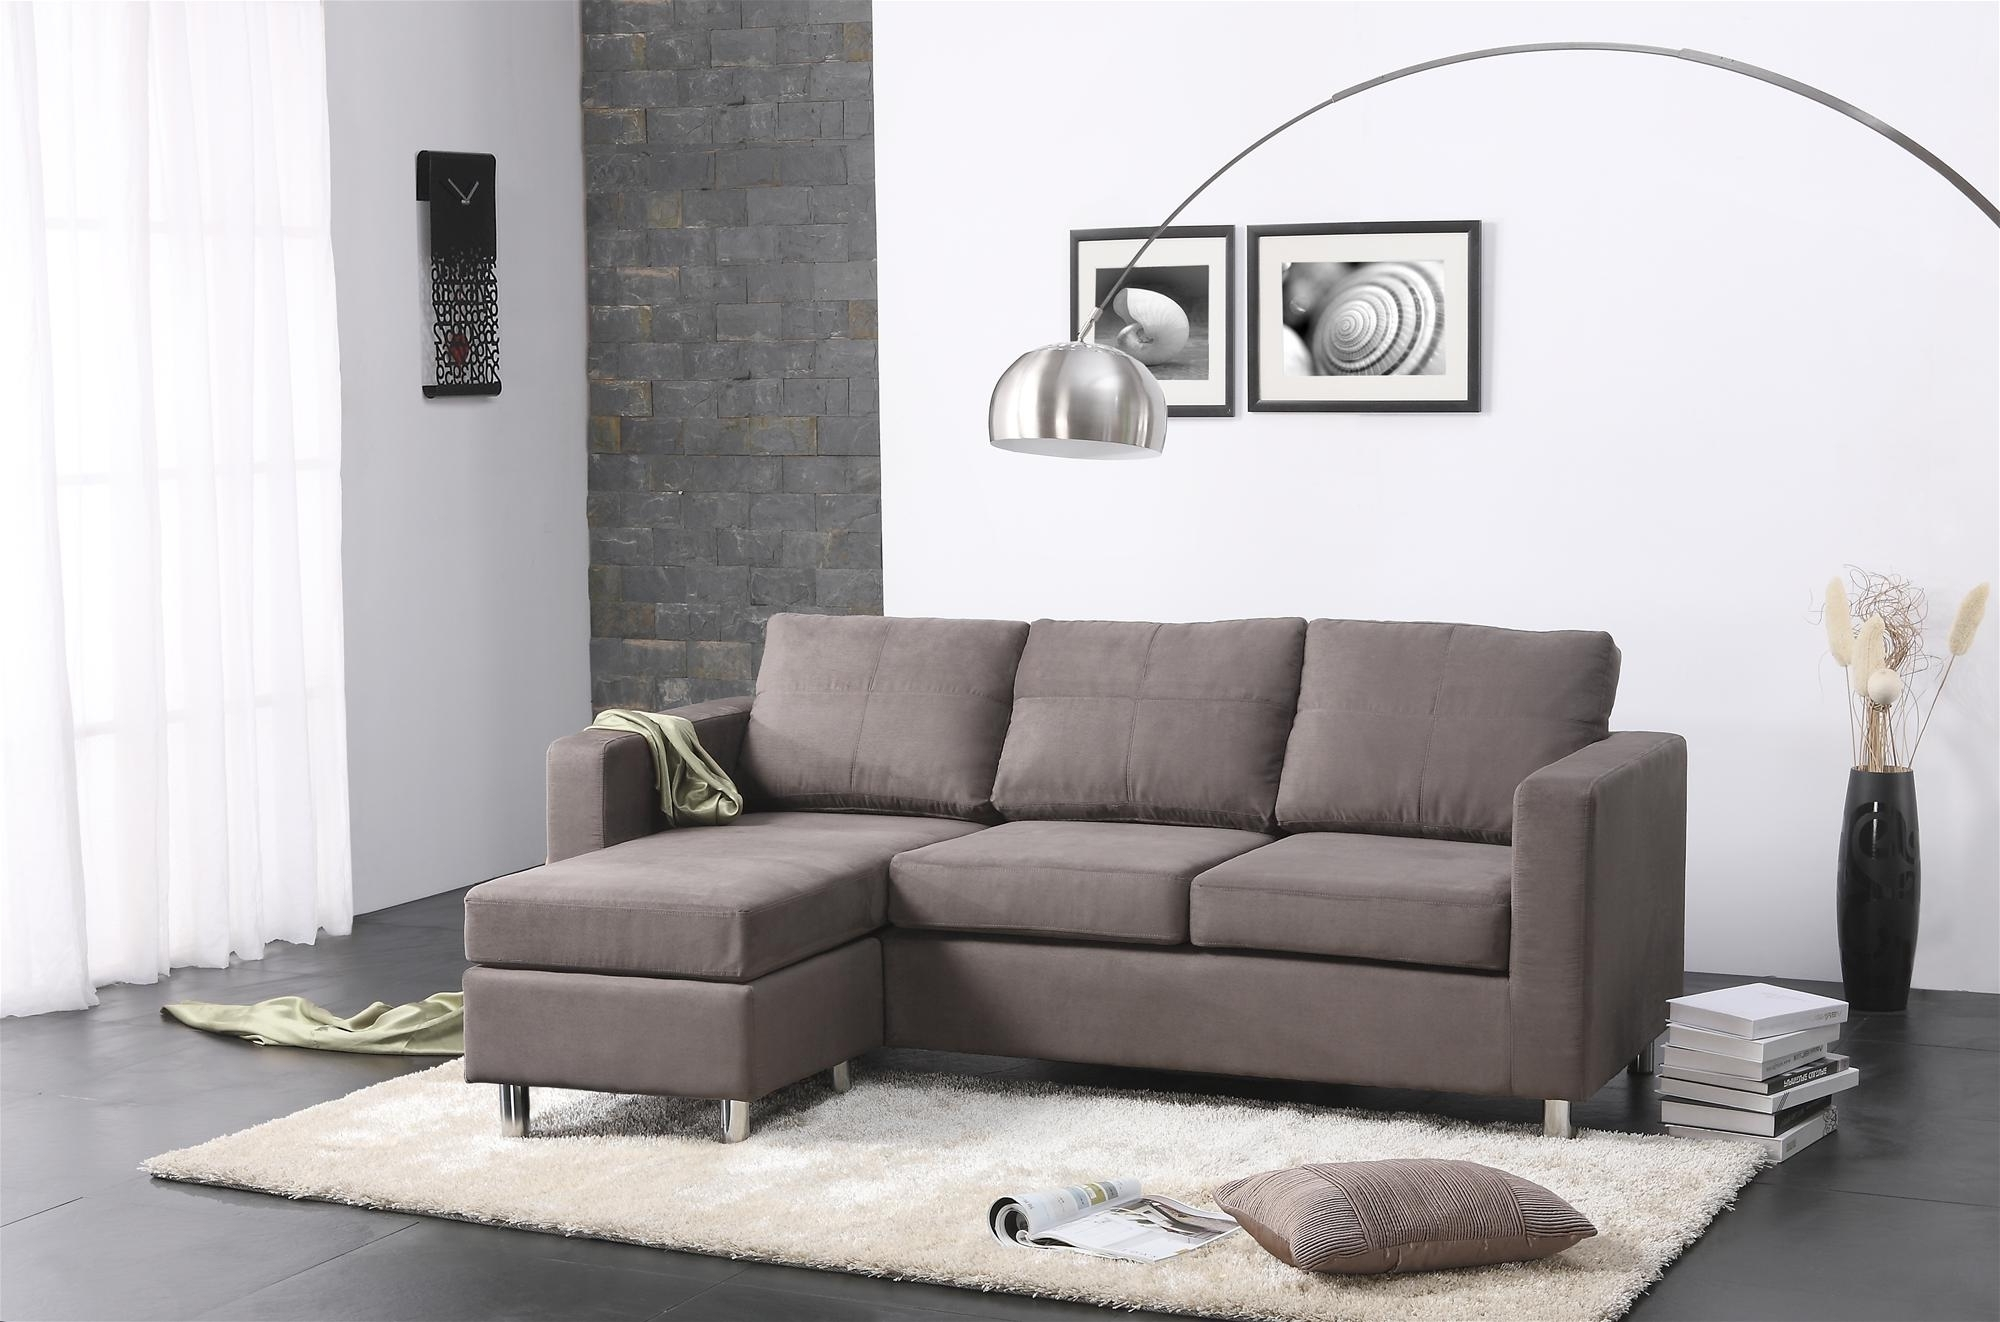 Trendy Small Spaces Sectional Sofas Throughout Sofa : Small Sofas For Small Spaces Tiny Sleeper Sofa Retro Sofa (View 13 of 15)